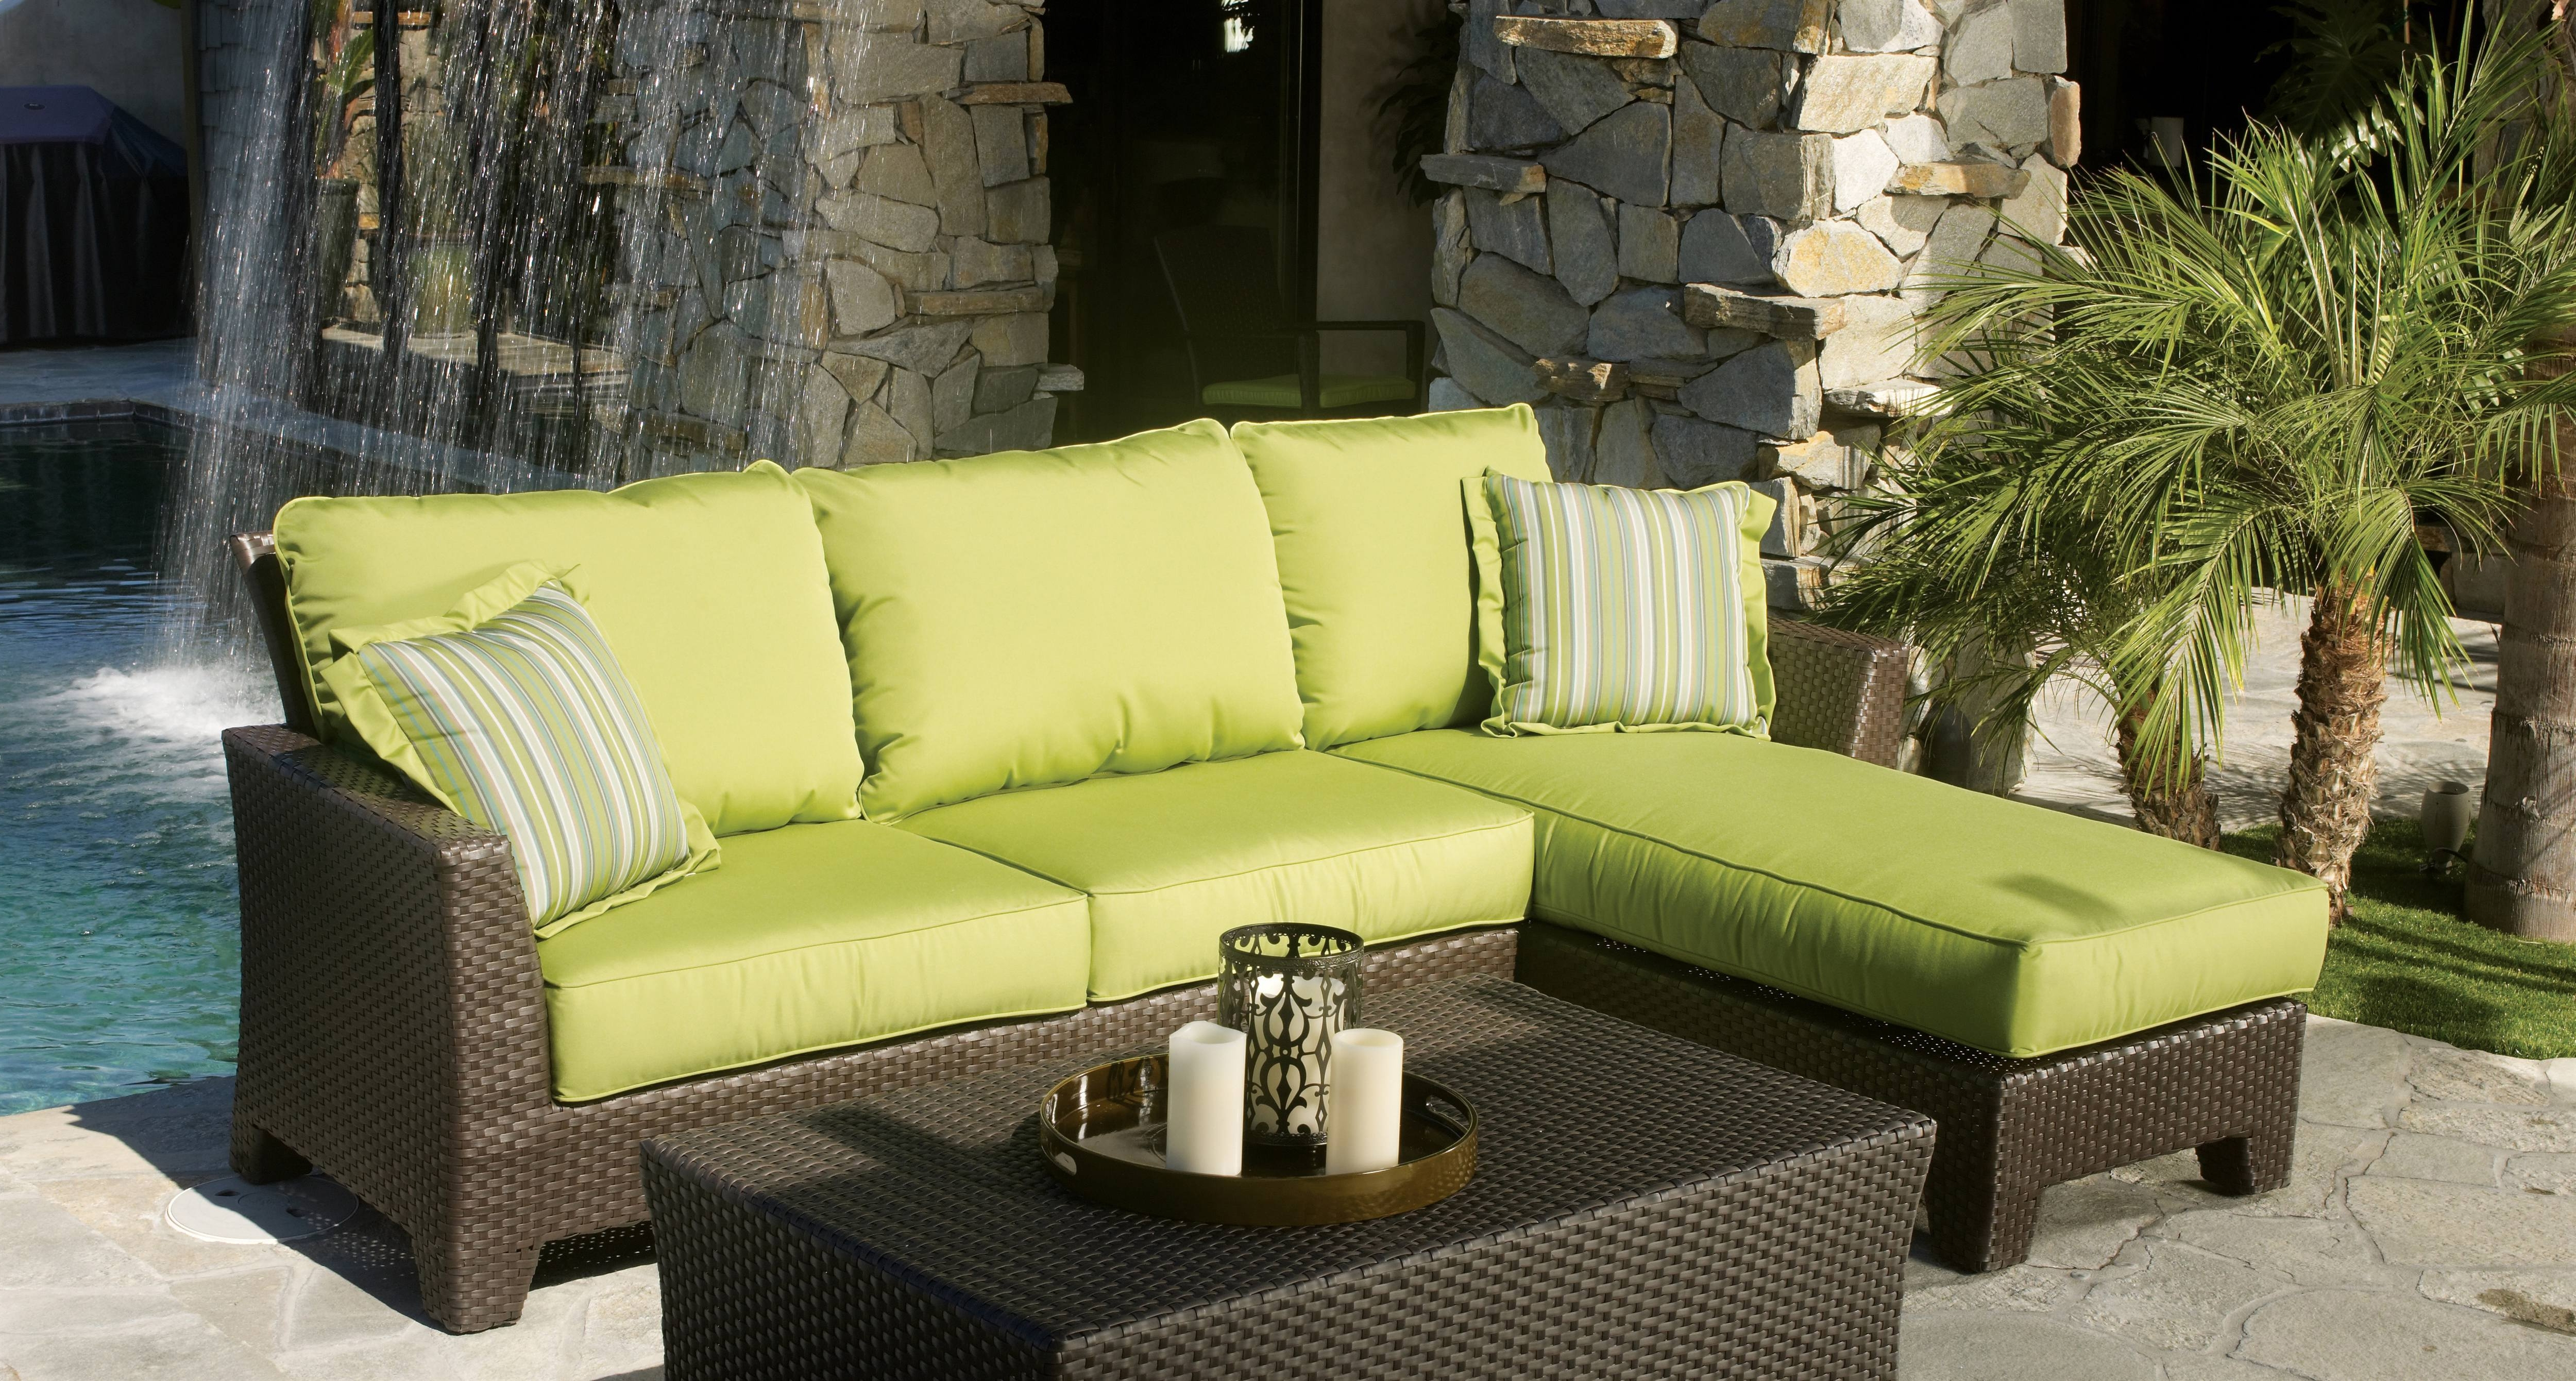 Green Sectional Sofas With Chaise Intended For Most Up To Date Luxury Lime Green Sectional Sofa 79 For Your U Shaped Sectional (View 14 of 20)